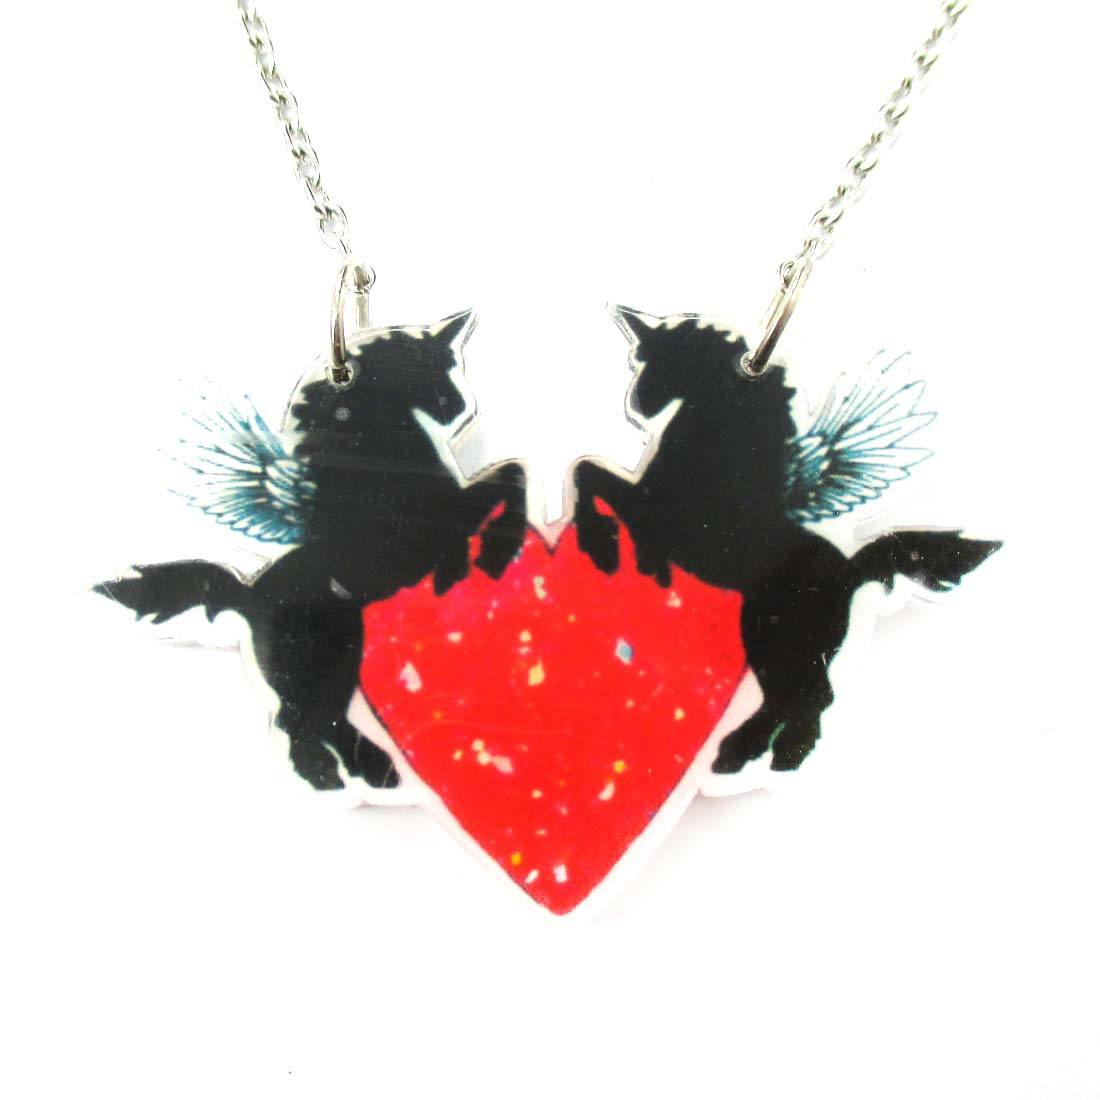 Unicorn Pegasus Surrounding A Heart Shaped Acrylic Pendant Necklace